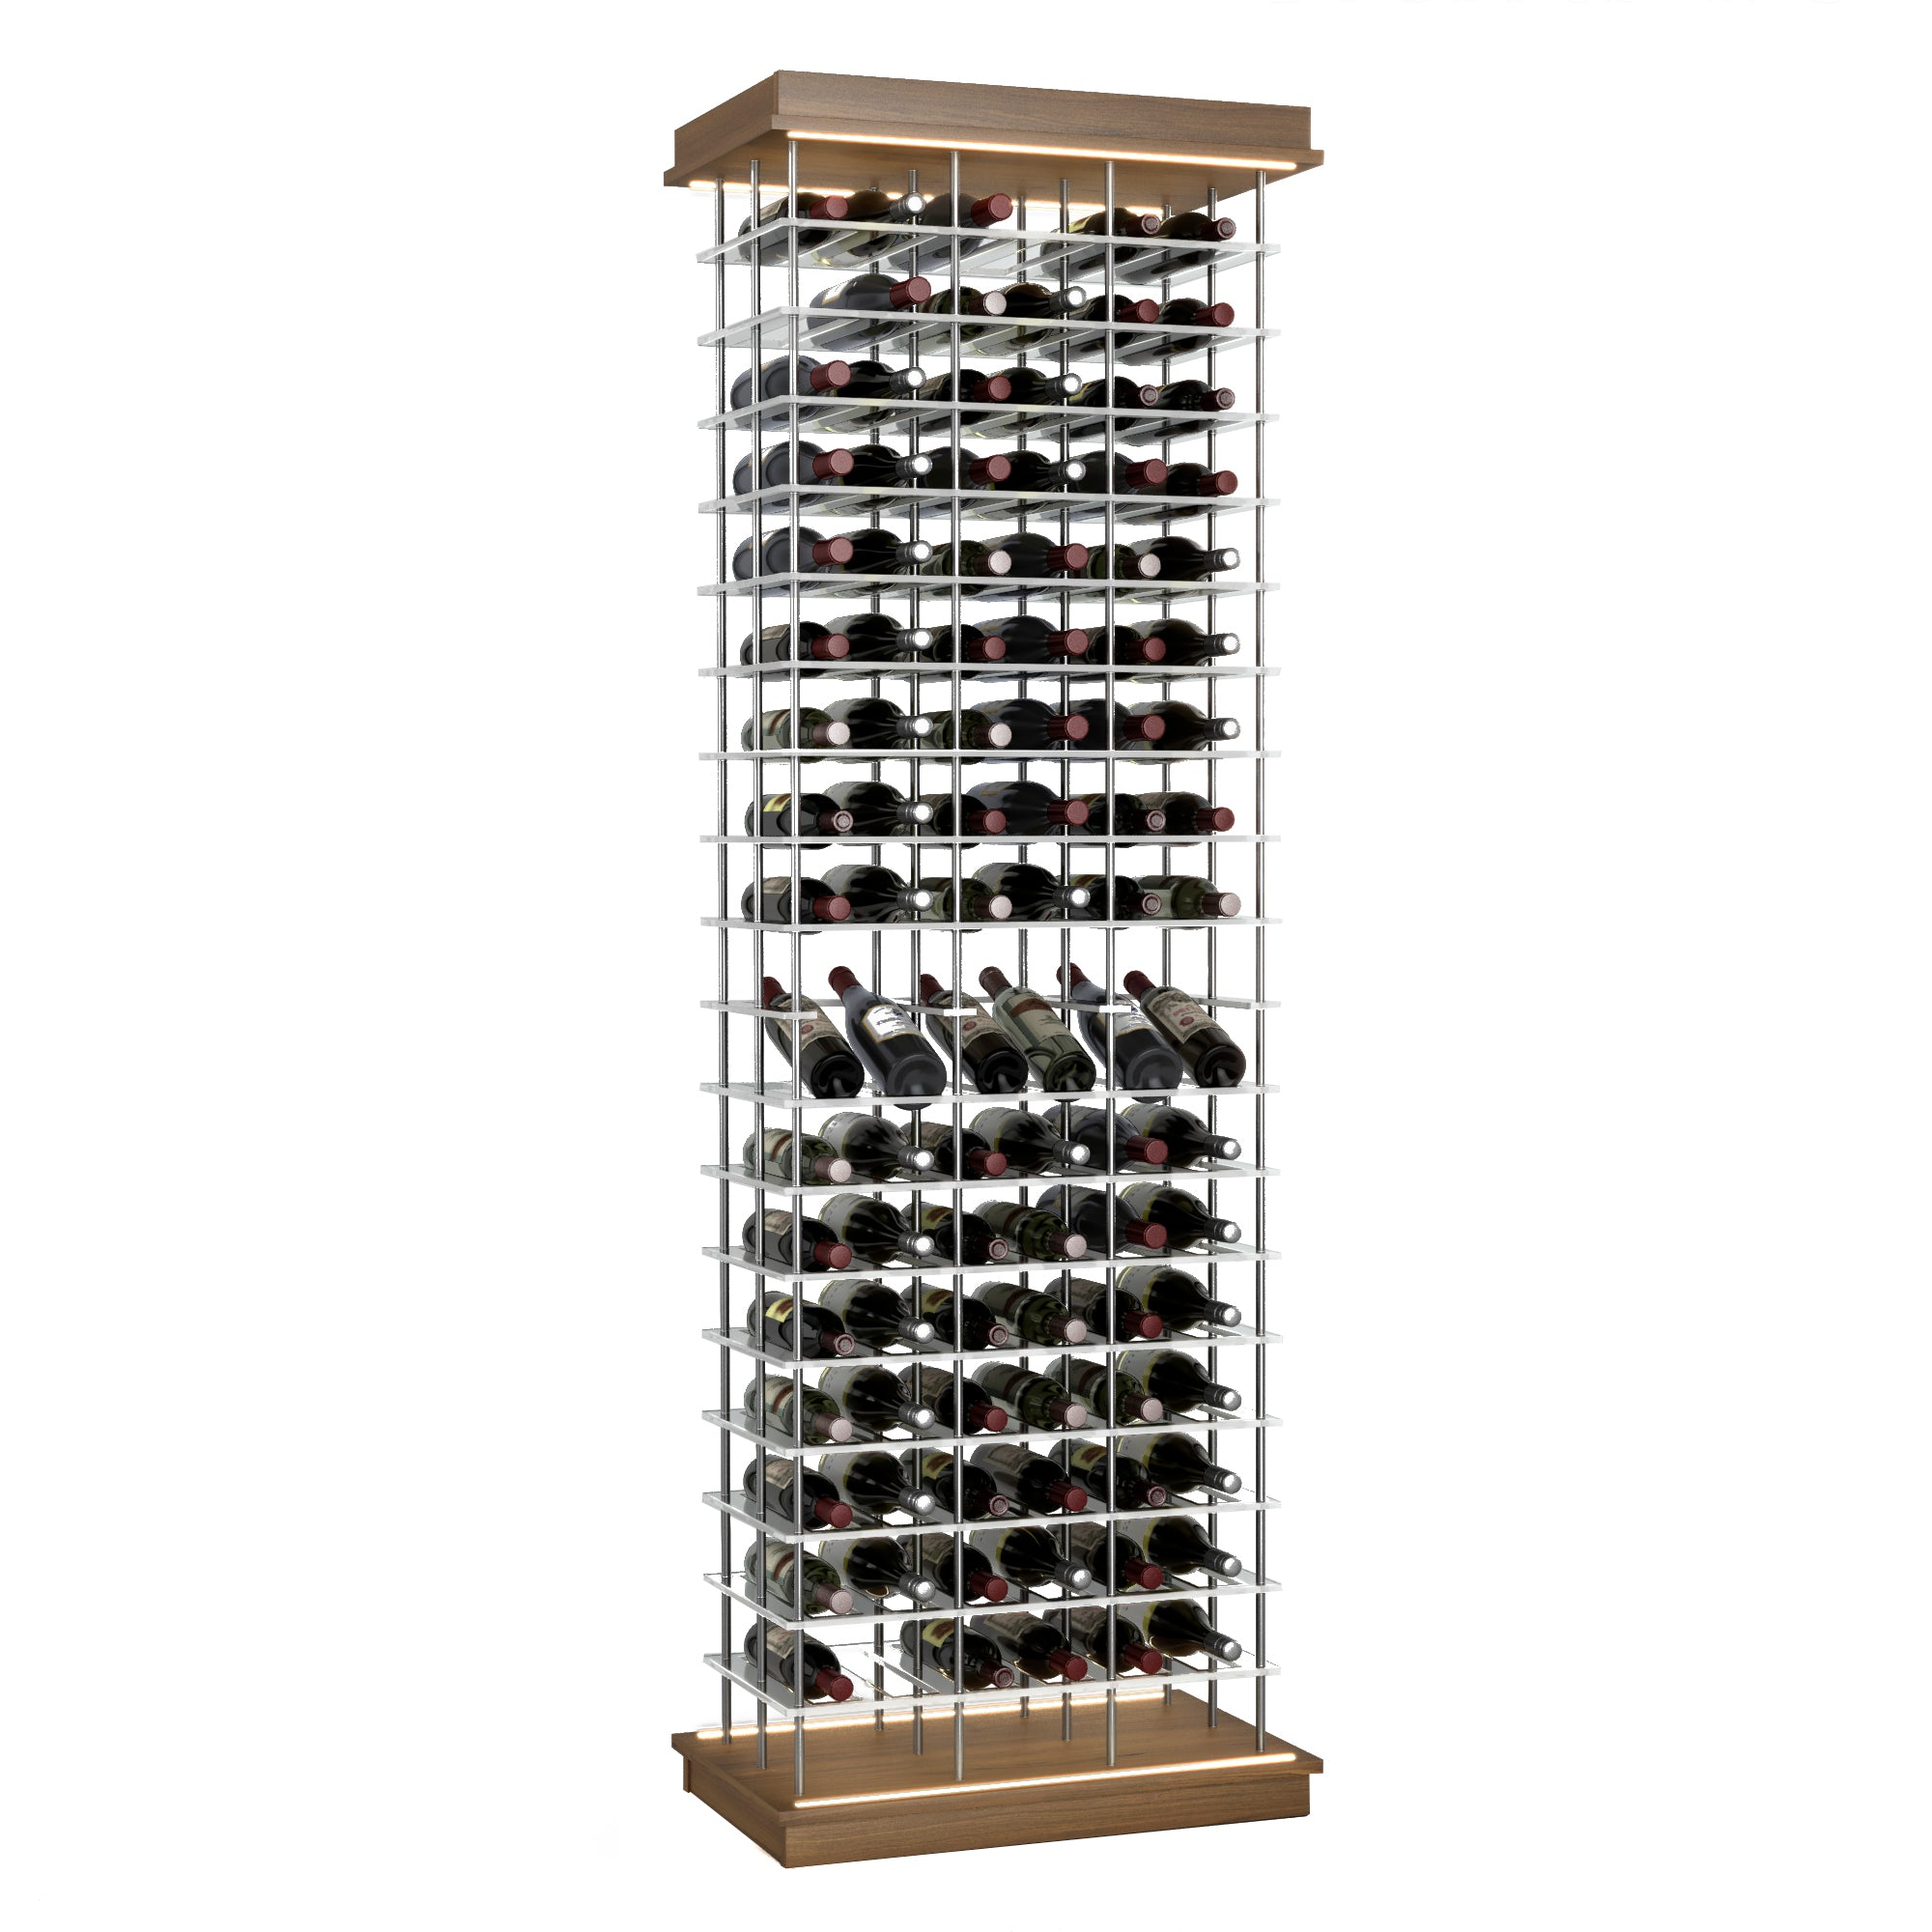 102-Bottle Elevation Wine Rack with Angled Display, Cork Forward, Modern Wine Storage, Kessick